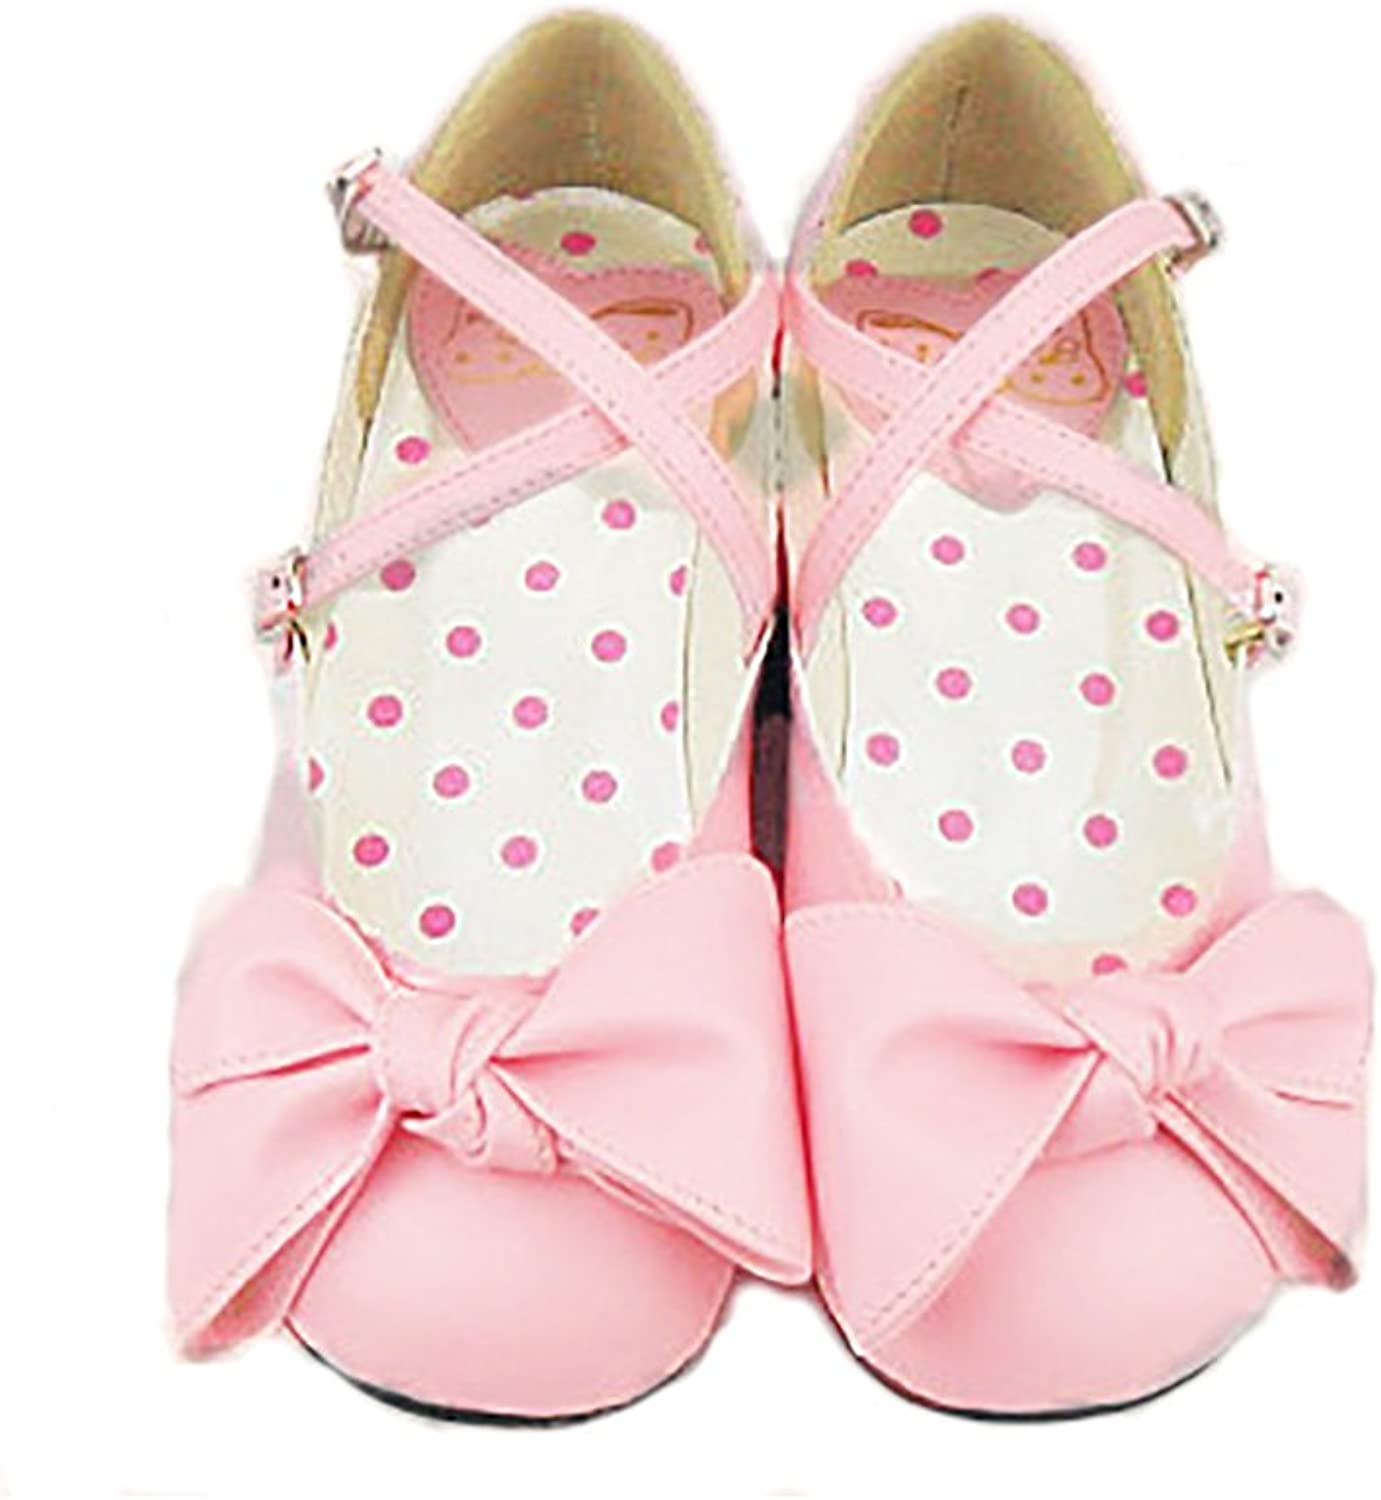 Japanese Sweet Lolita Block Low Heel Round Toe PU Leahter Mary Jane shoes